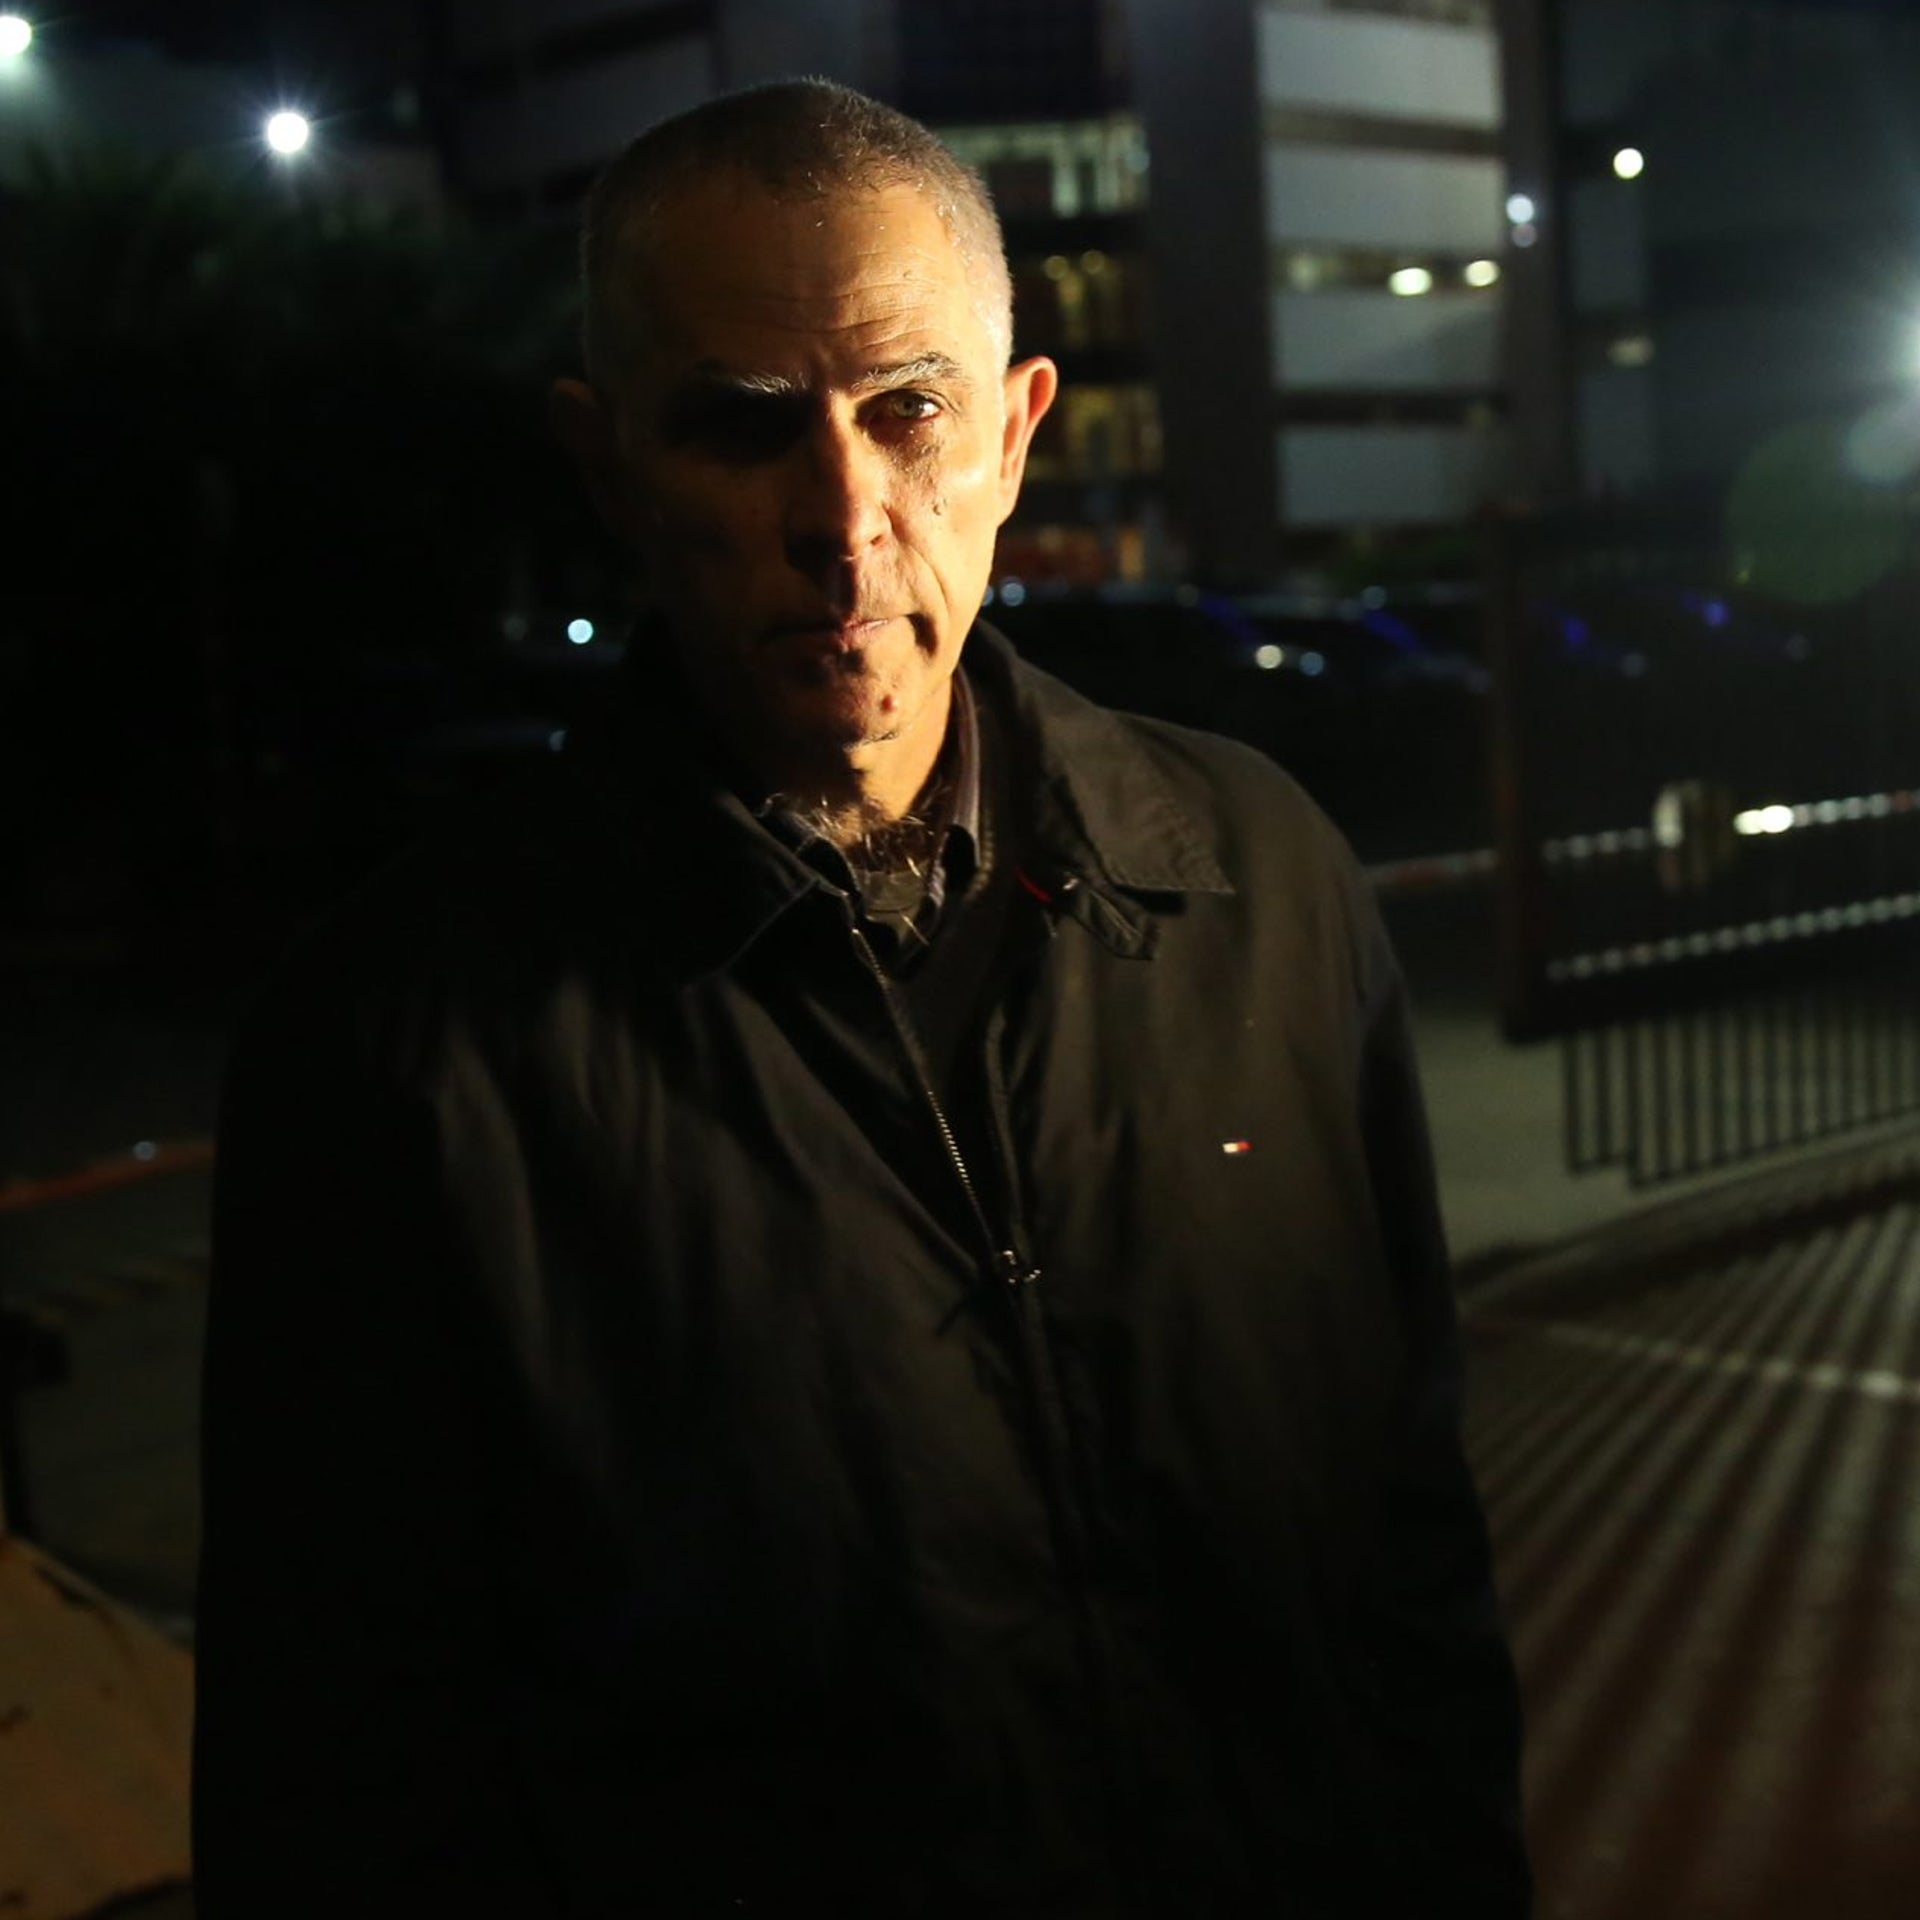 Arnon Mozes leaving the police station after questioning, January 15, 2017.